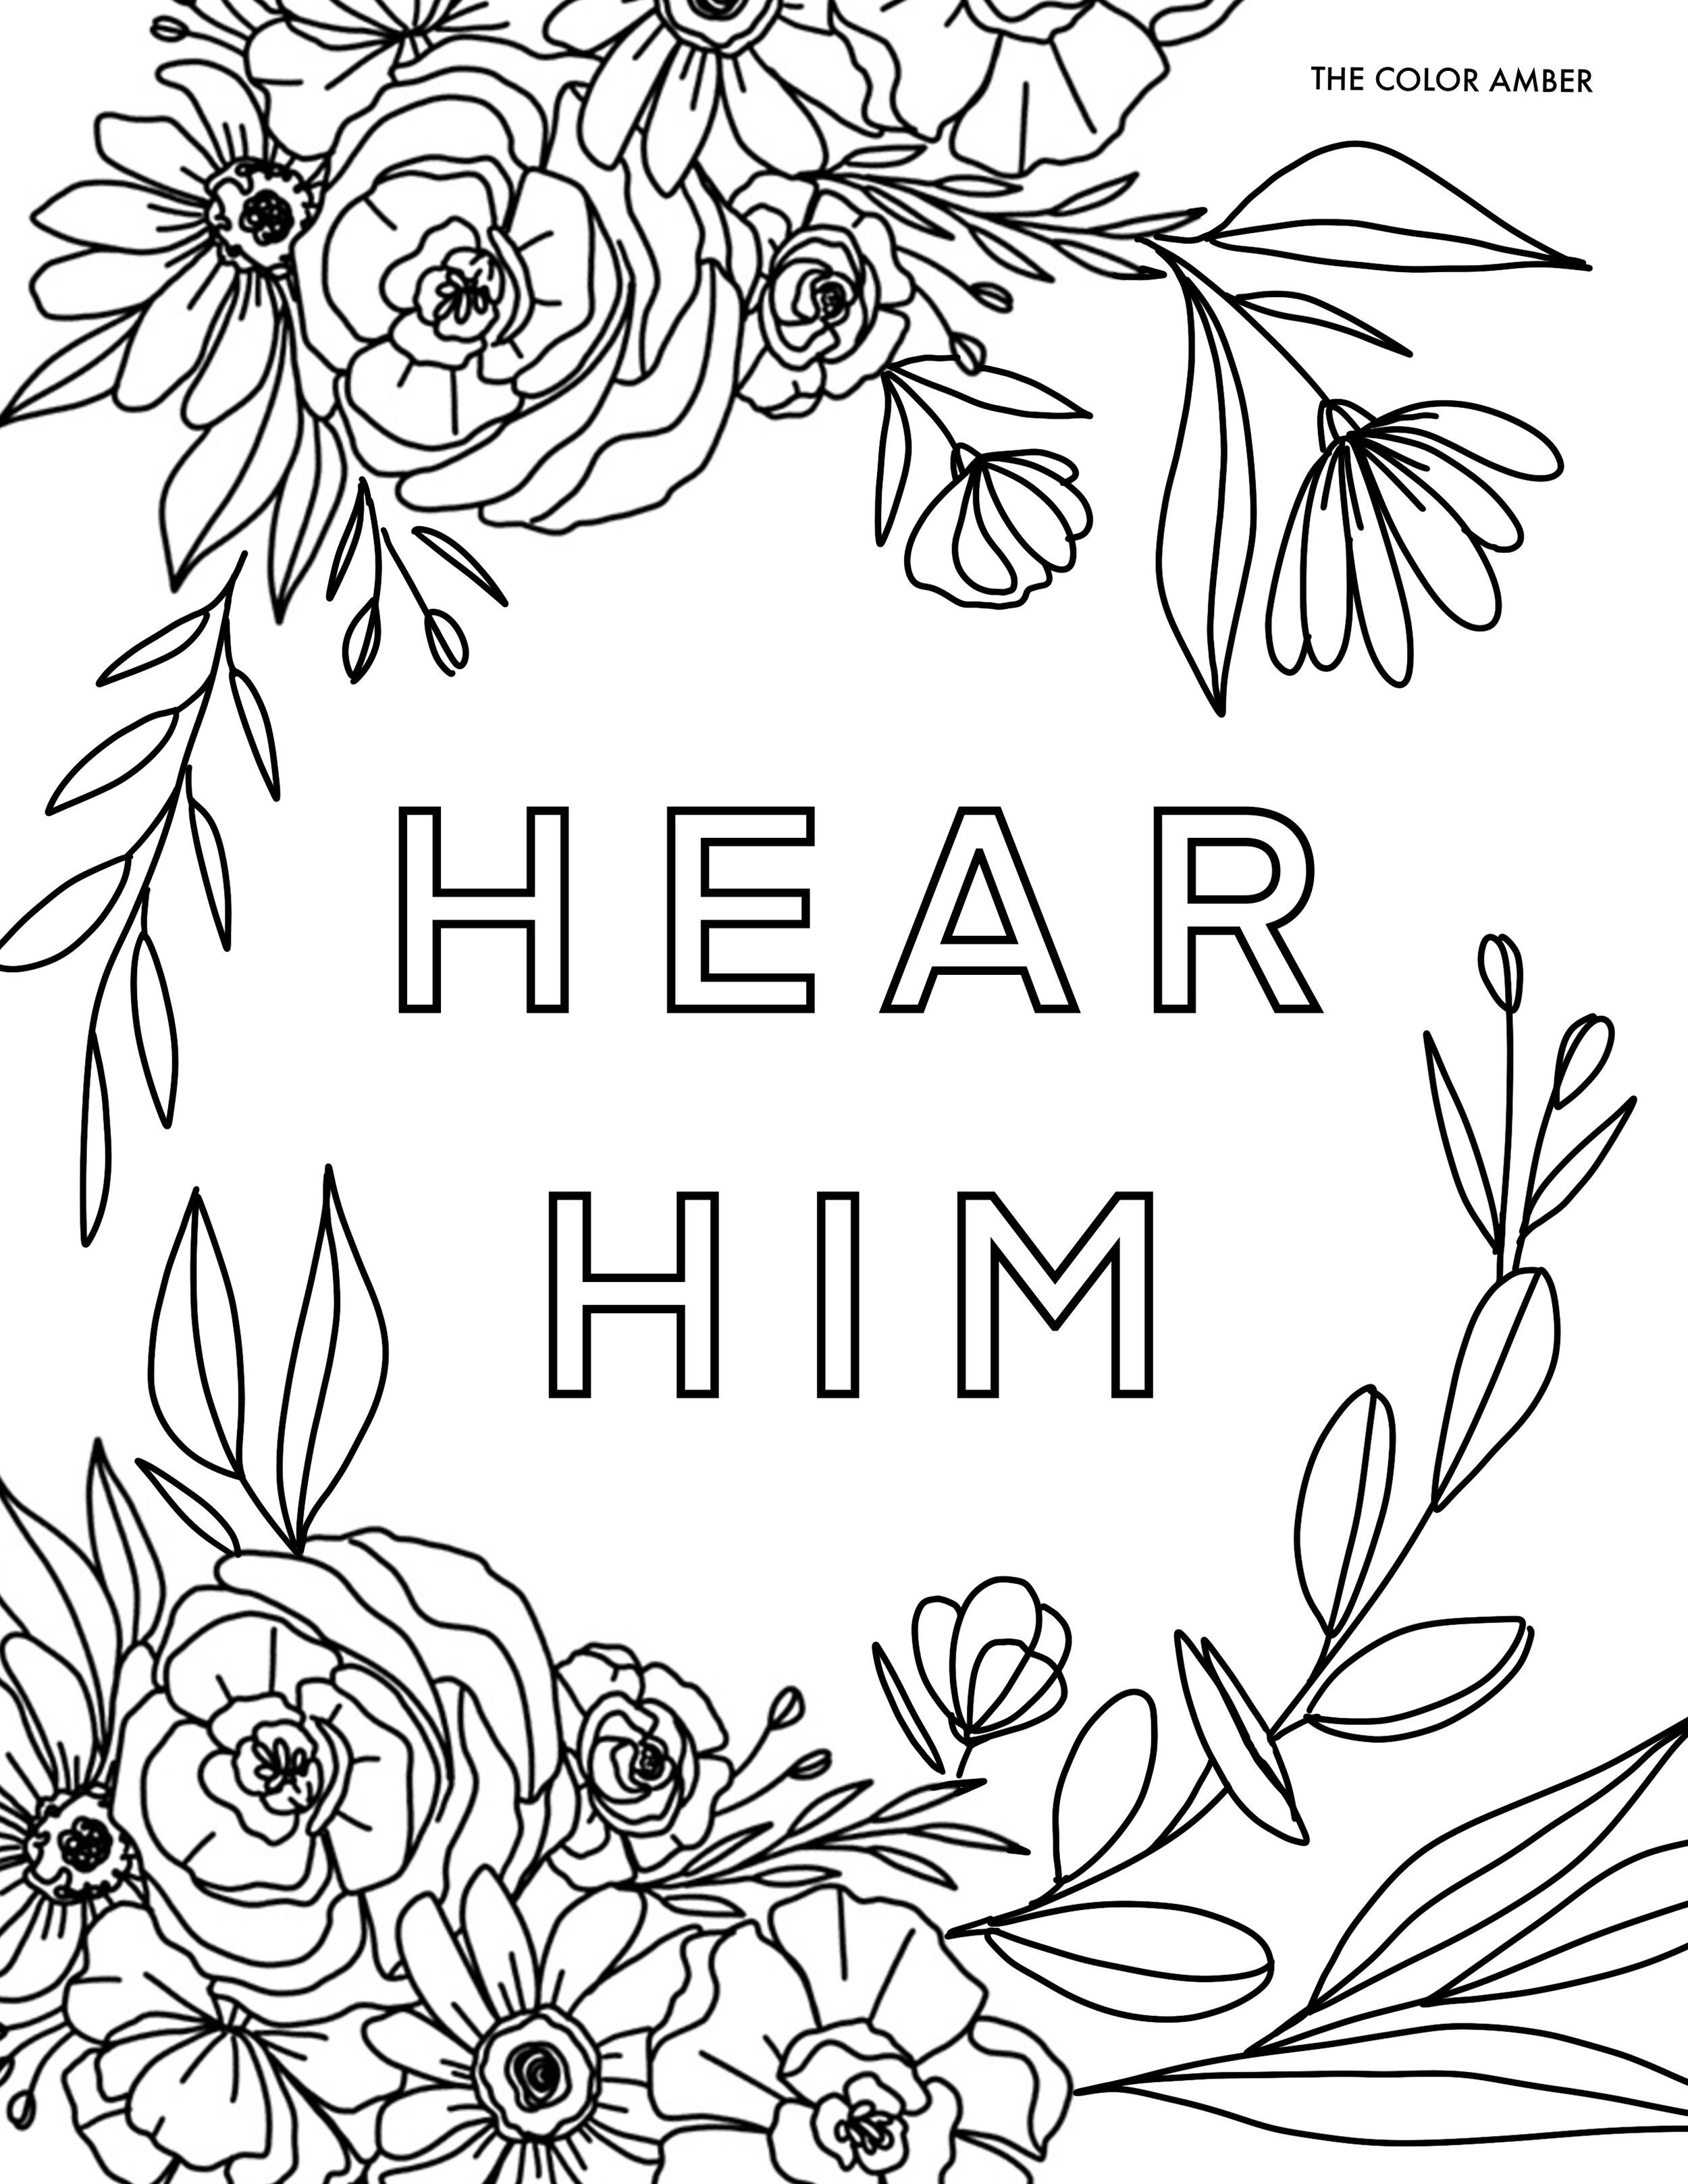 General Conference 2020 Free Coloring Pages The Color Amber In 2020 General Conference Free Coloring Pages Lds Coloring Pages